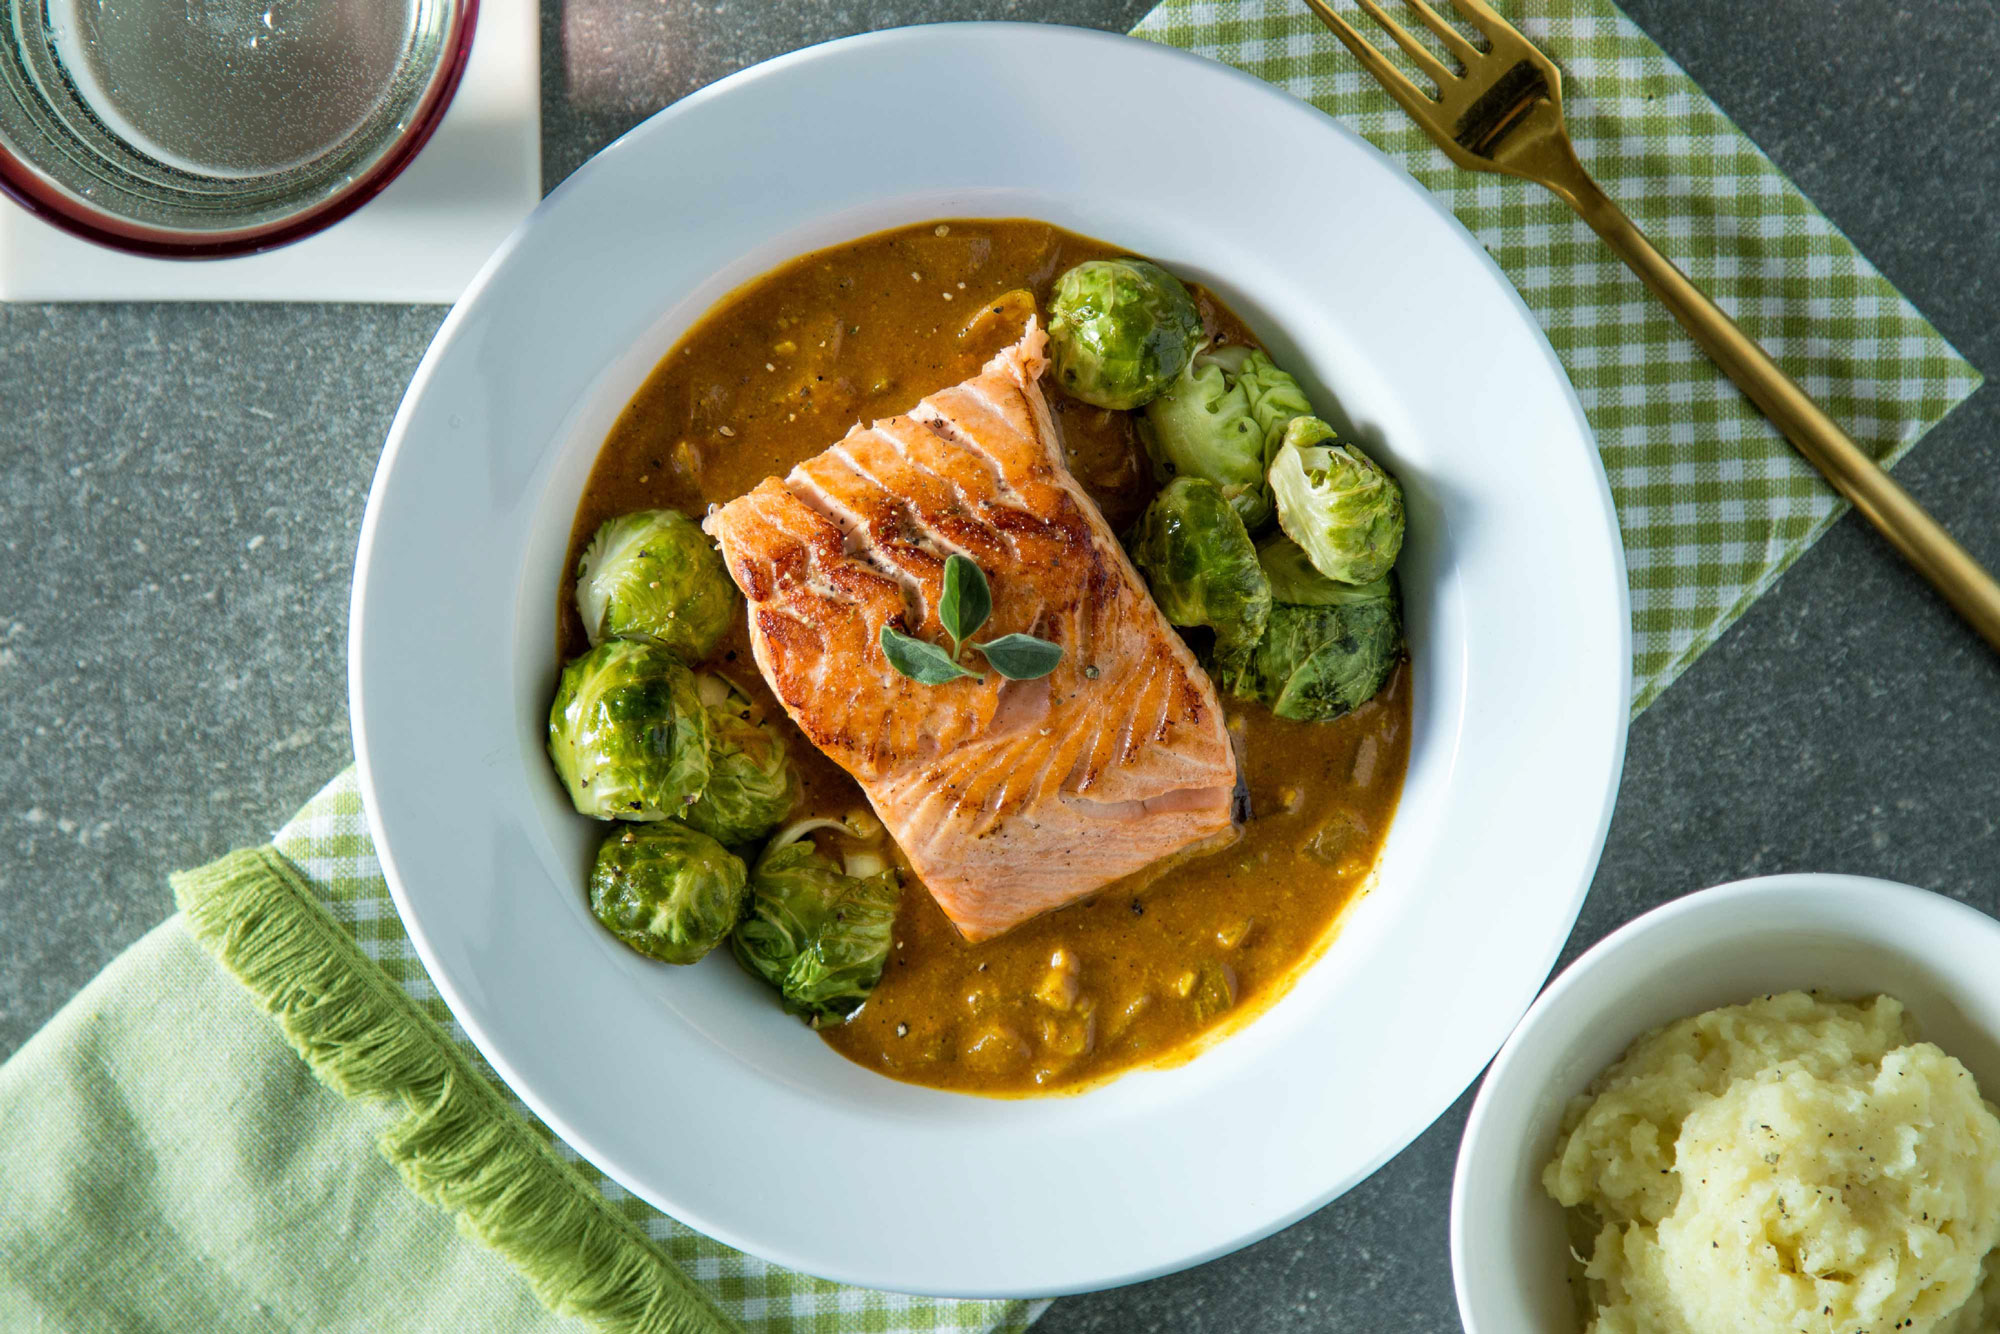 Trifecta Nutrition Paleo Curry Salmon